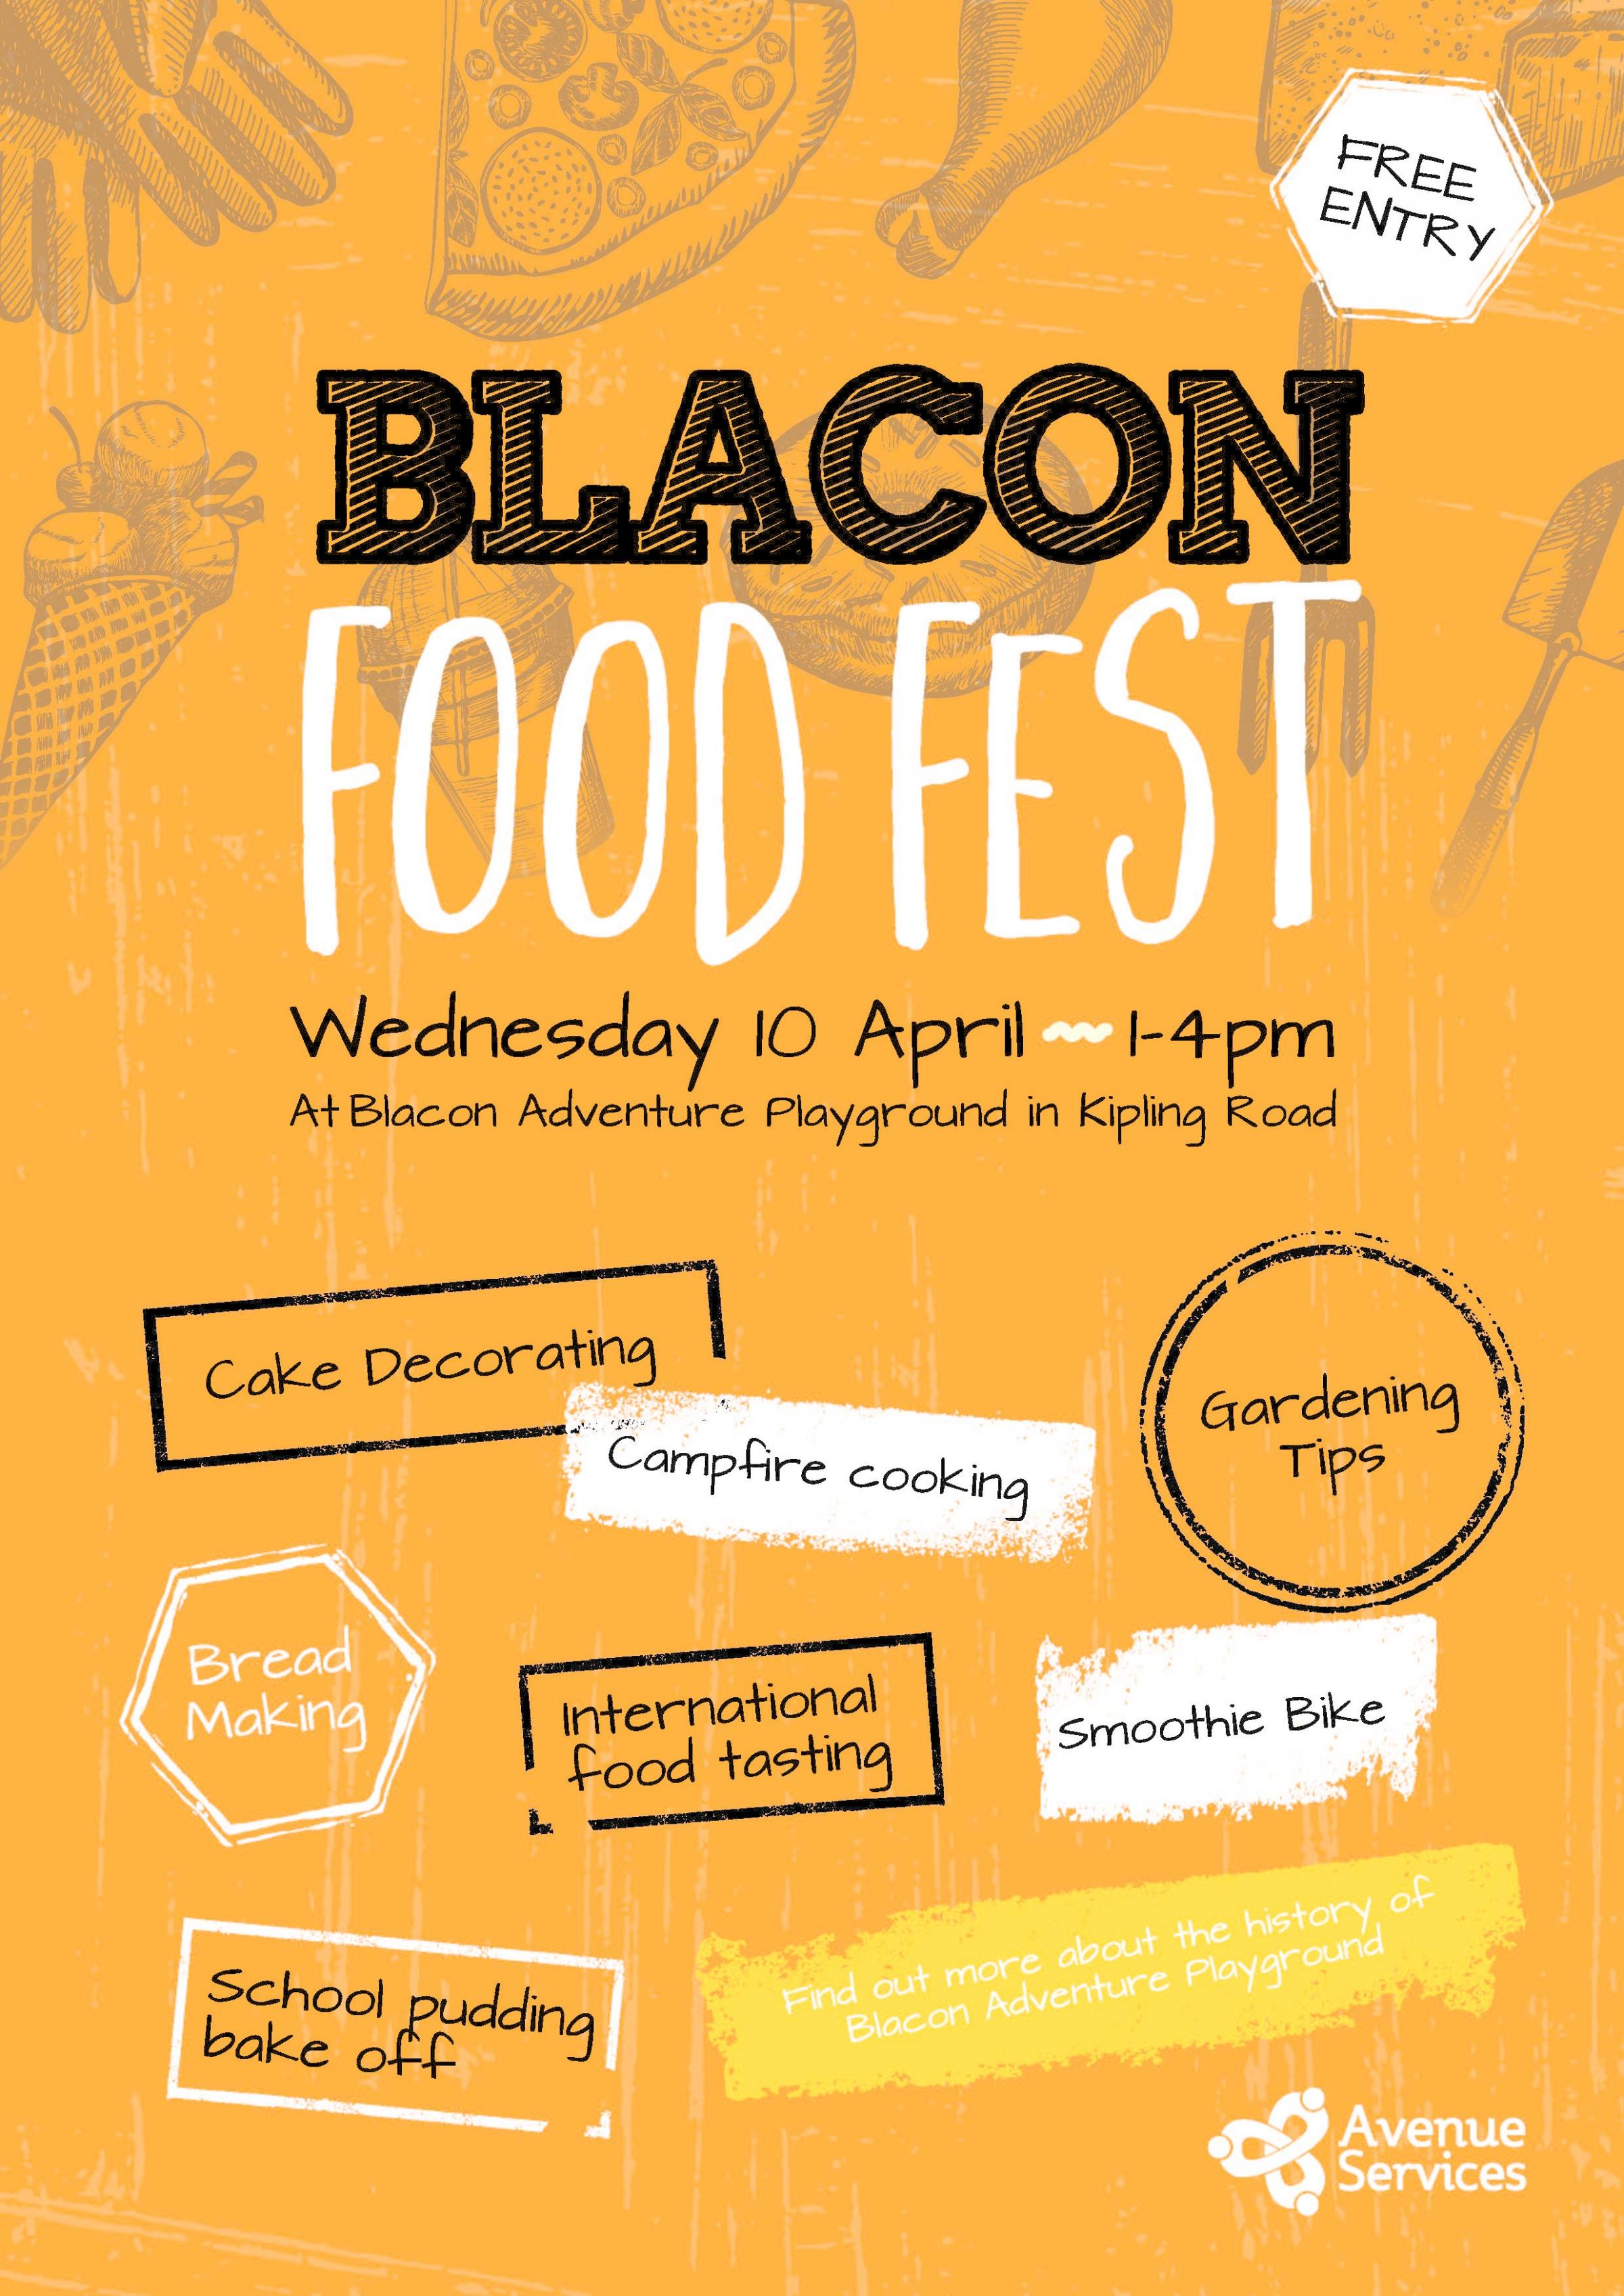 Blacon Food Festival to feature cake decorating, smoothie bike and campfire cooking